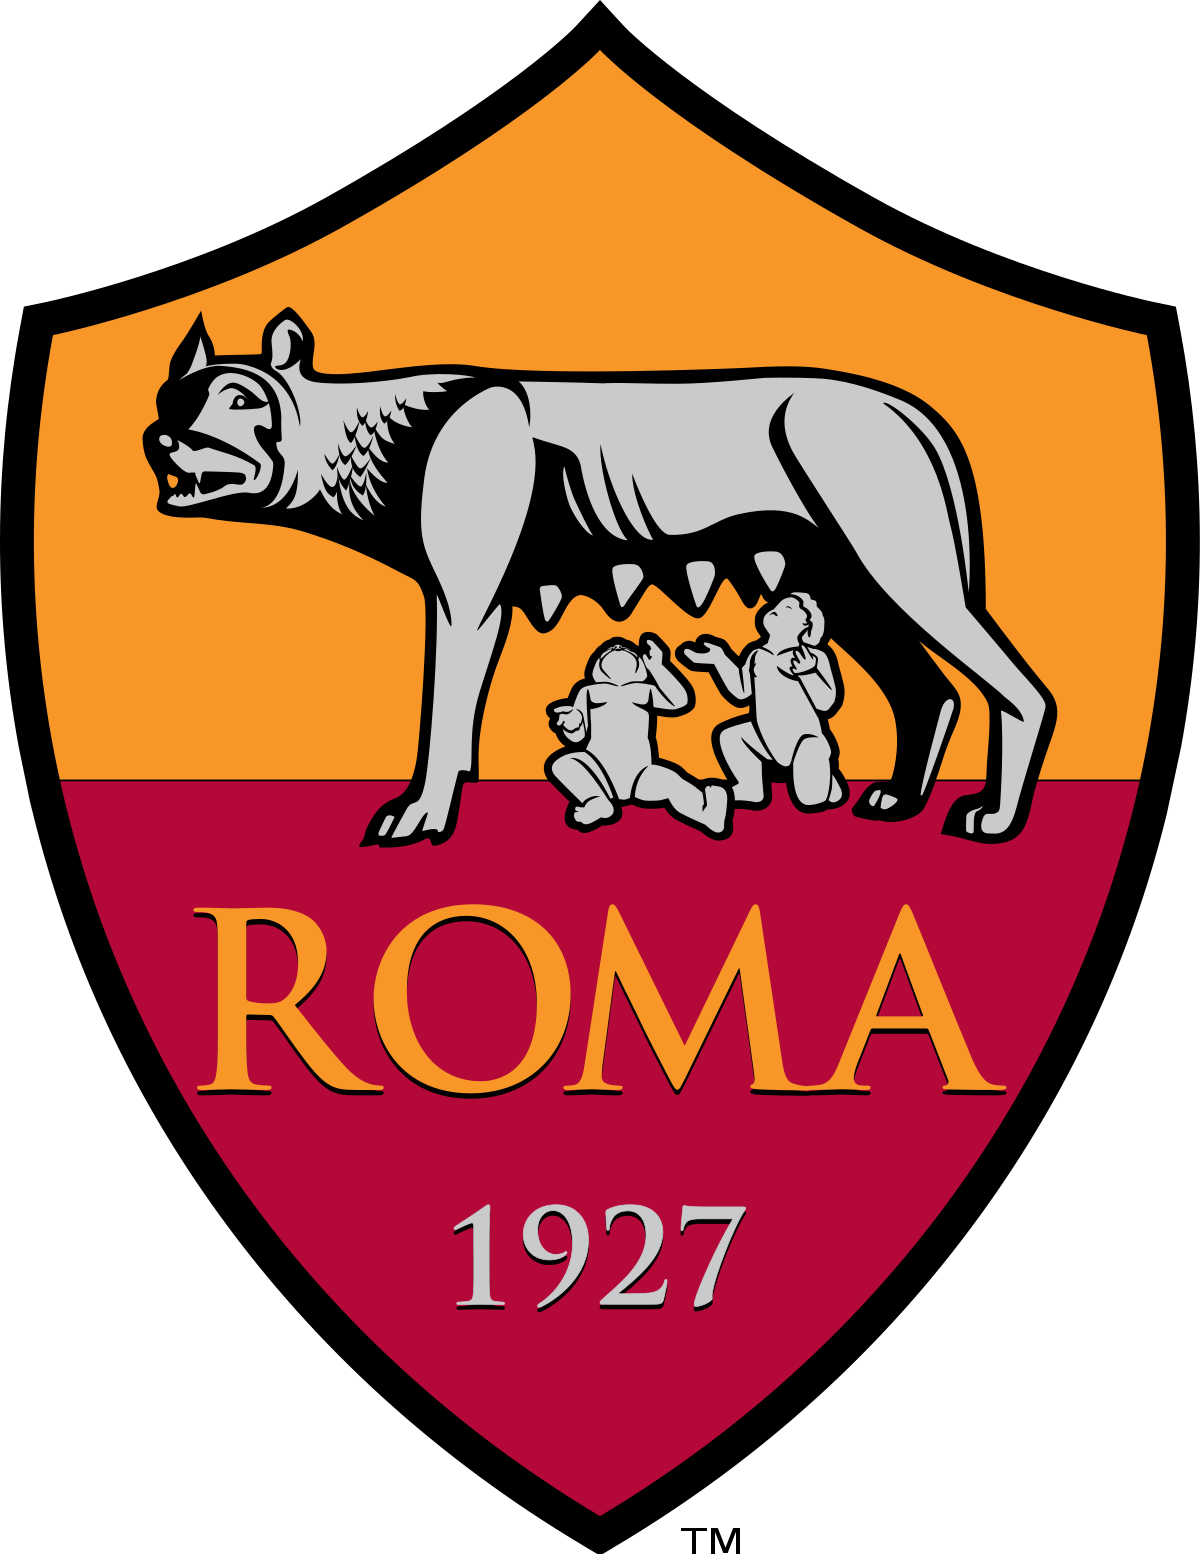 Archivo:AS Roma.png